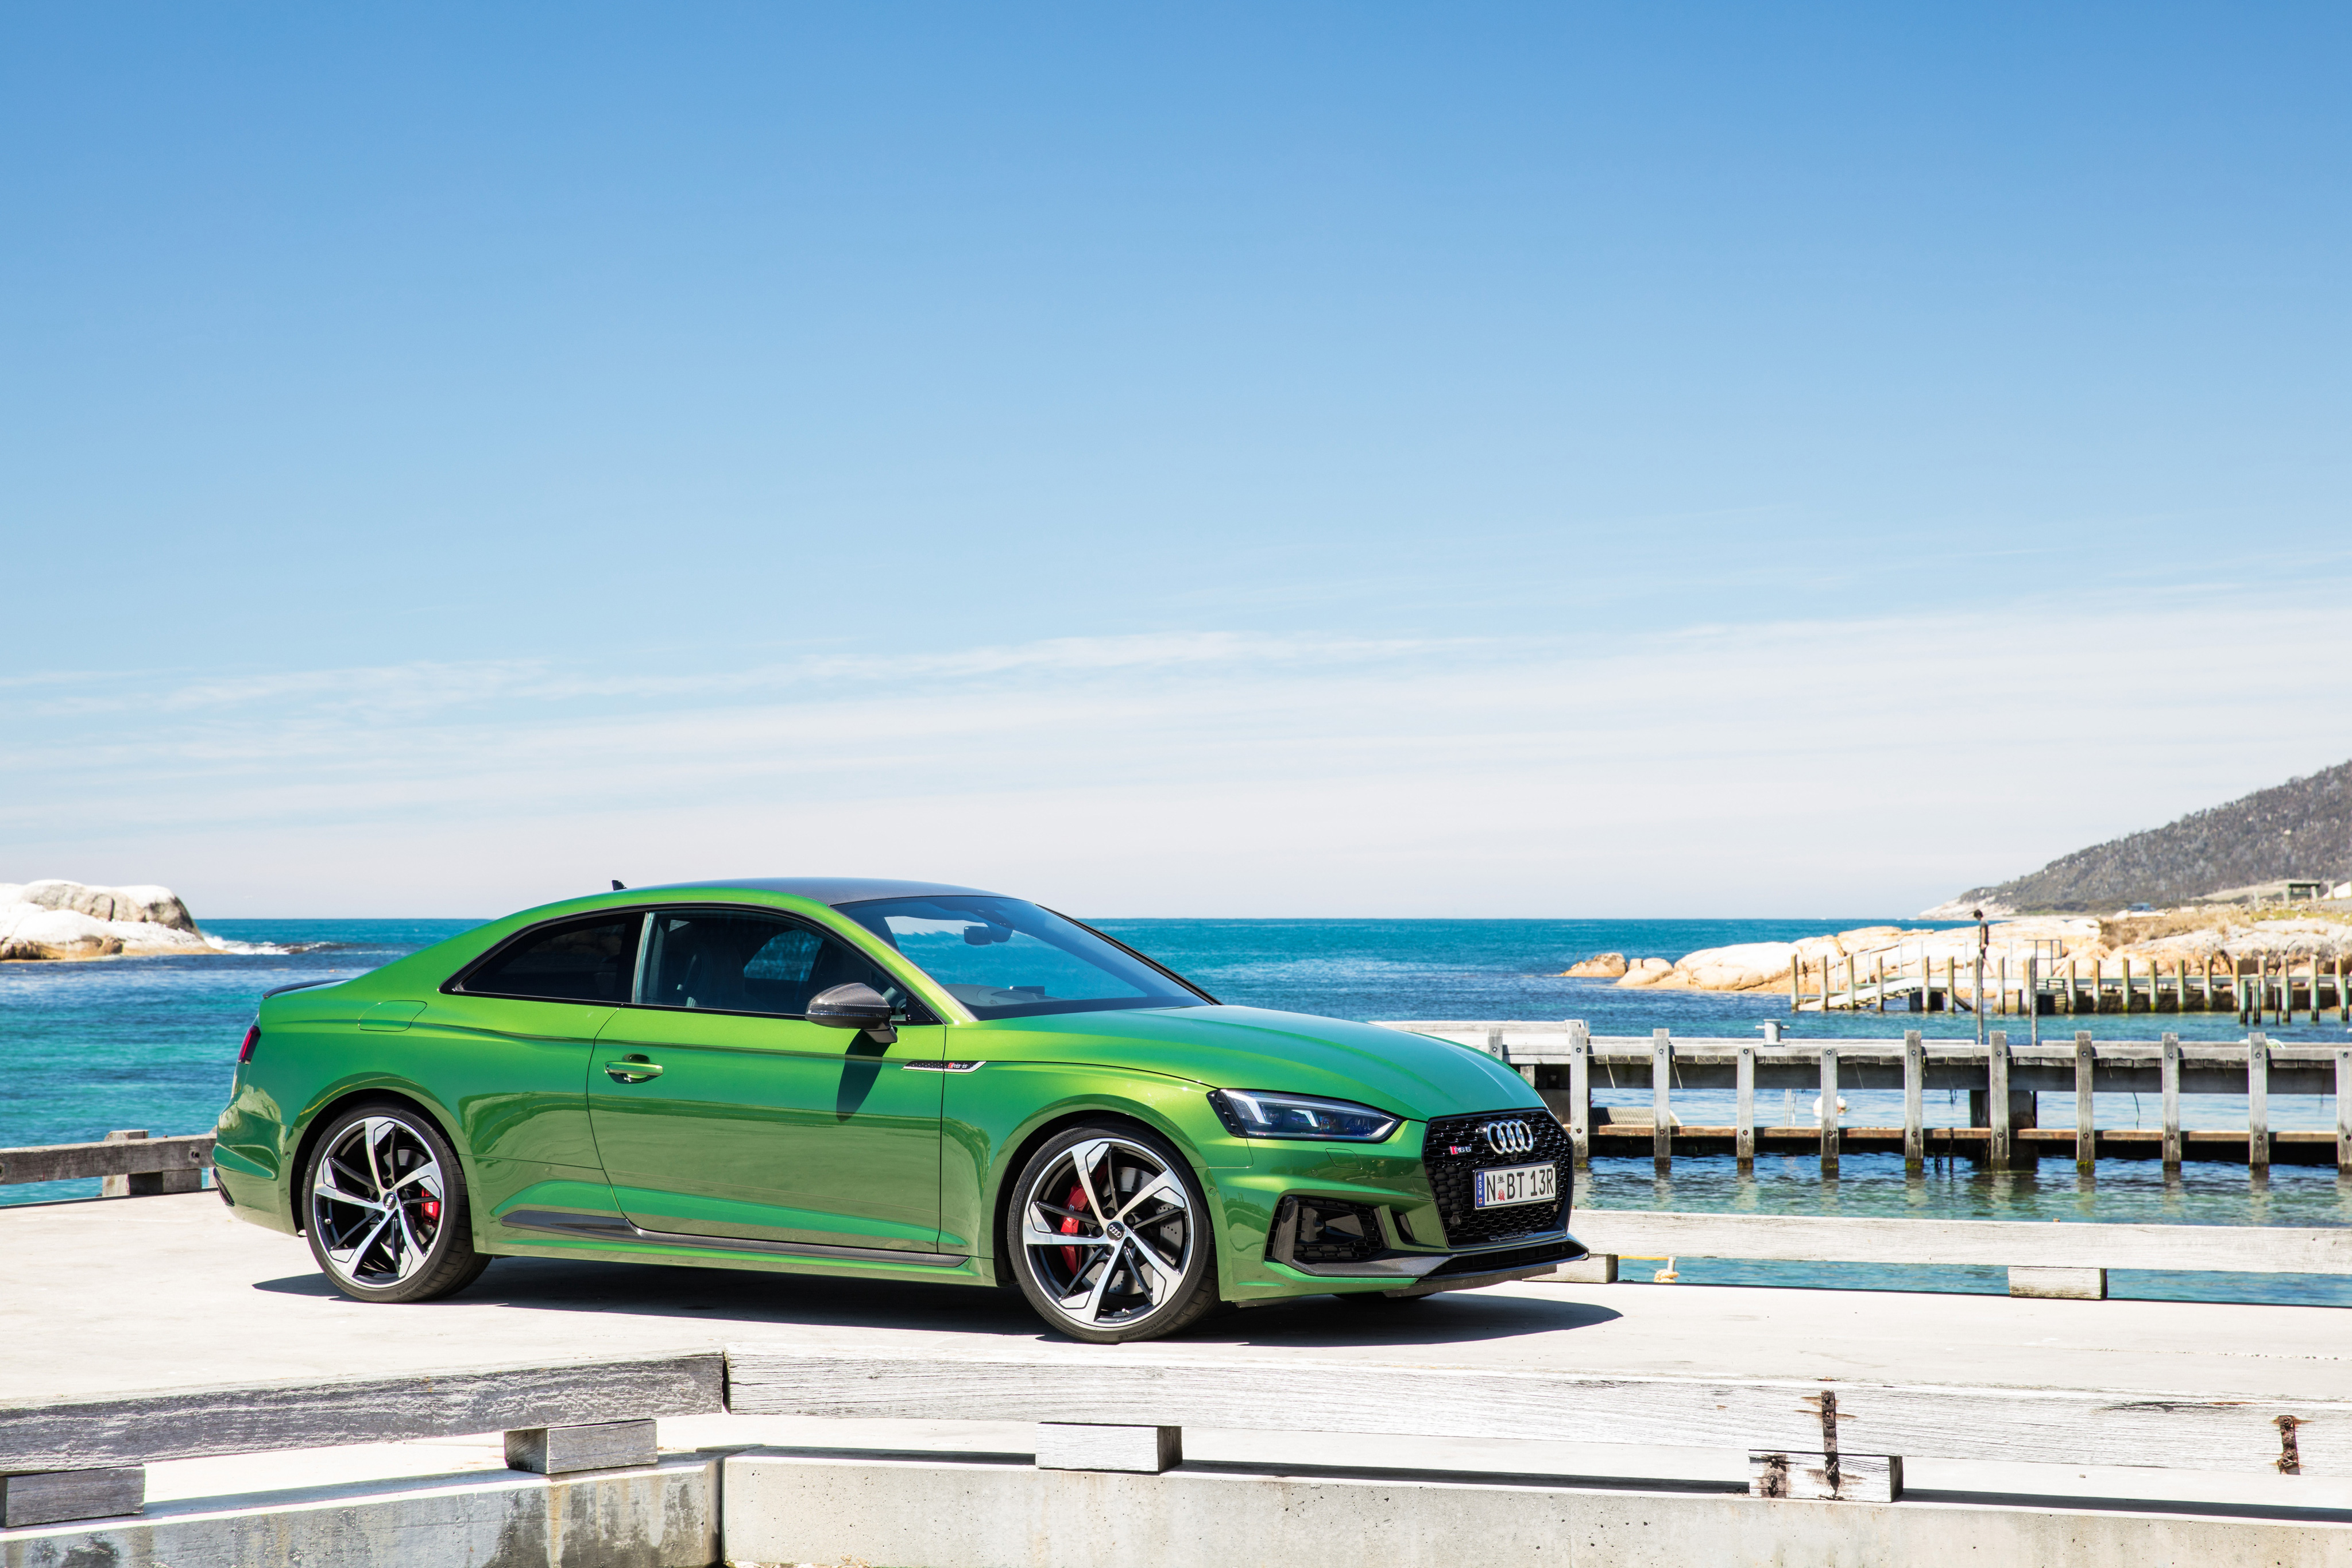 Audi Rs5 Sportback 4k 2019 Wallpapers: 3840x2160 Audi Rs5 Coupe 4k HD 4k Wallpapers, Images